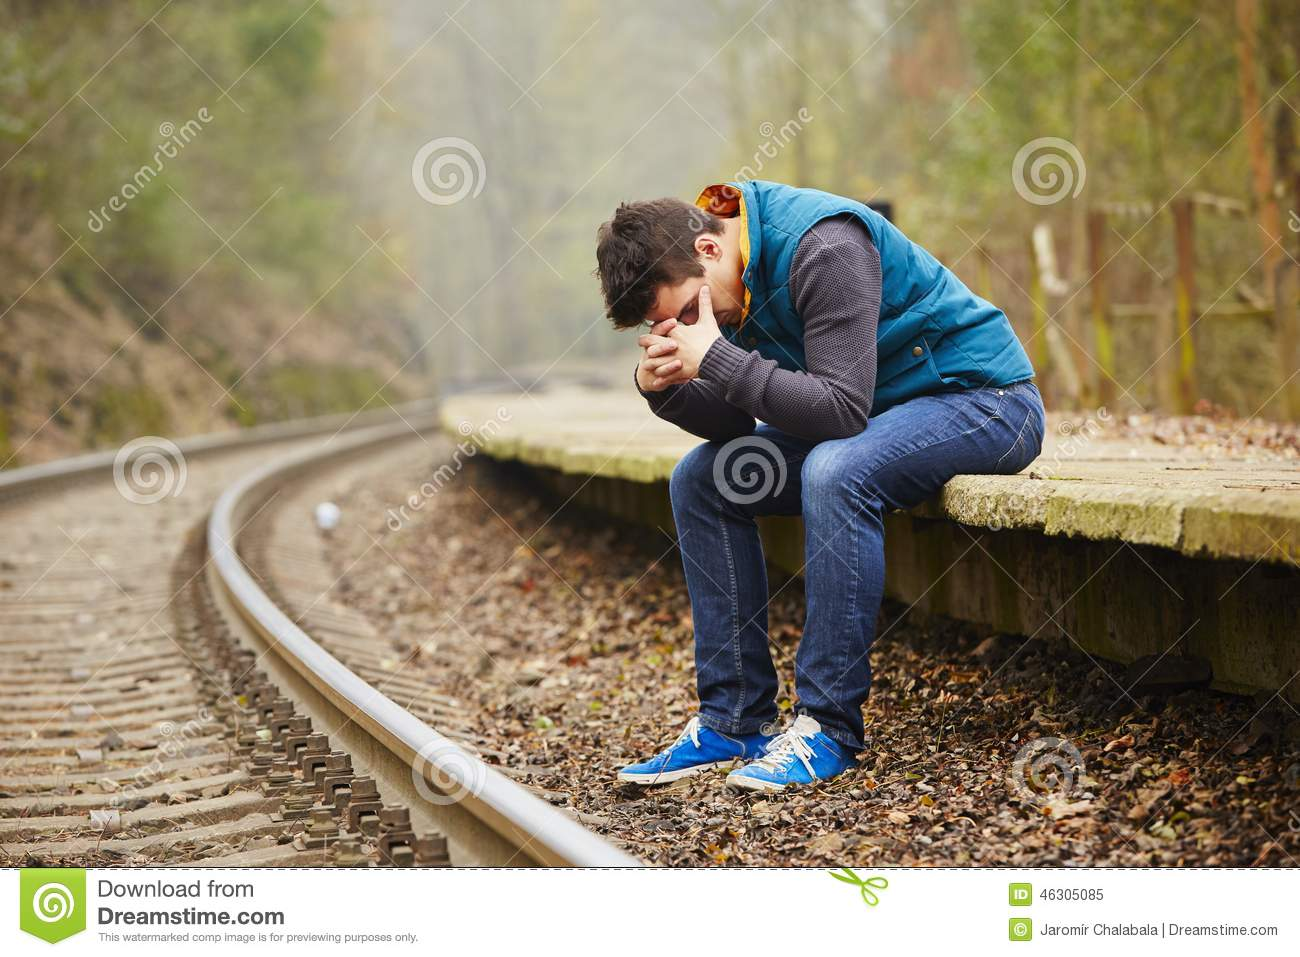 Sad man stock image. Image of loneliness, lonely, life - 46305085